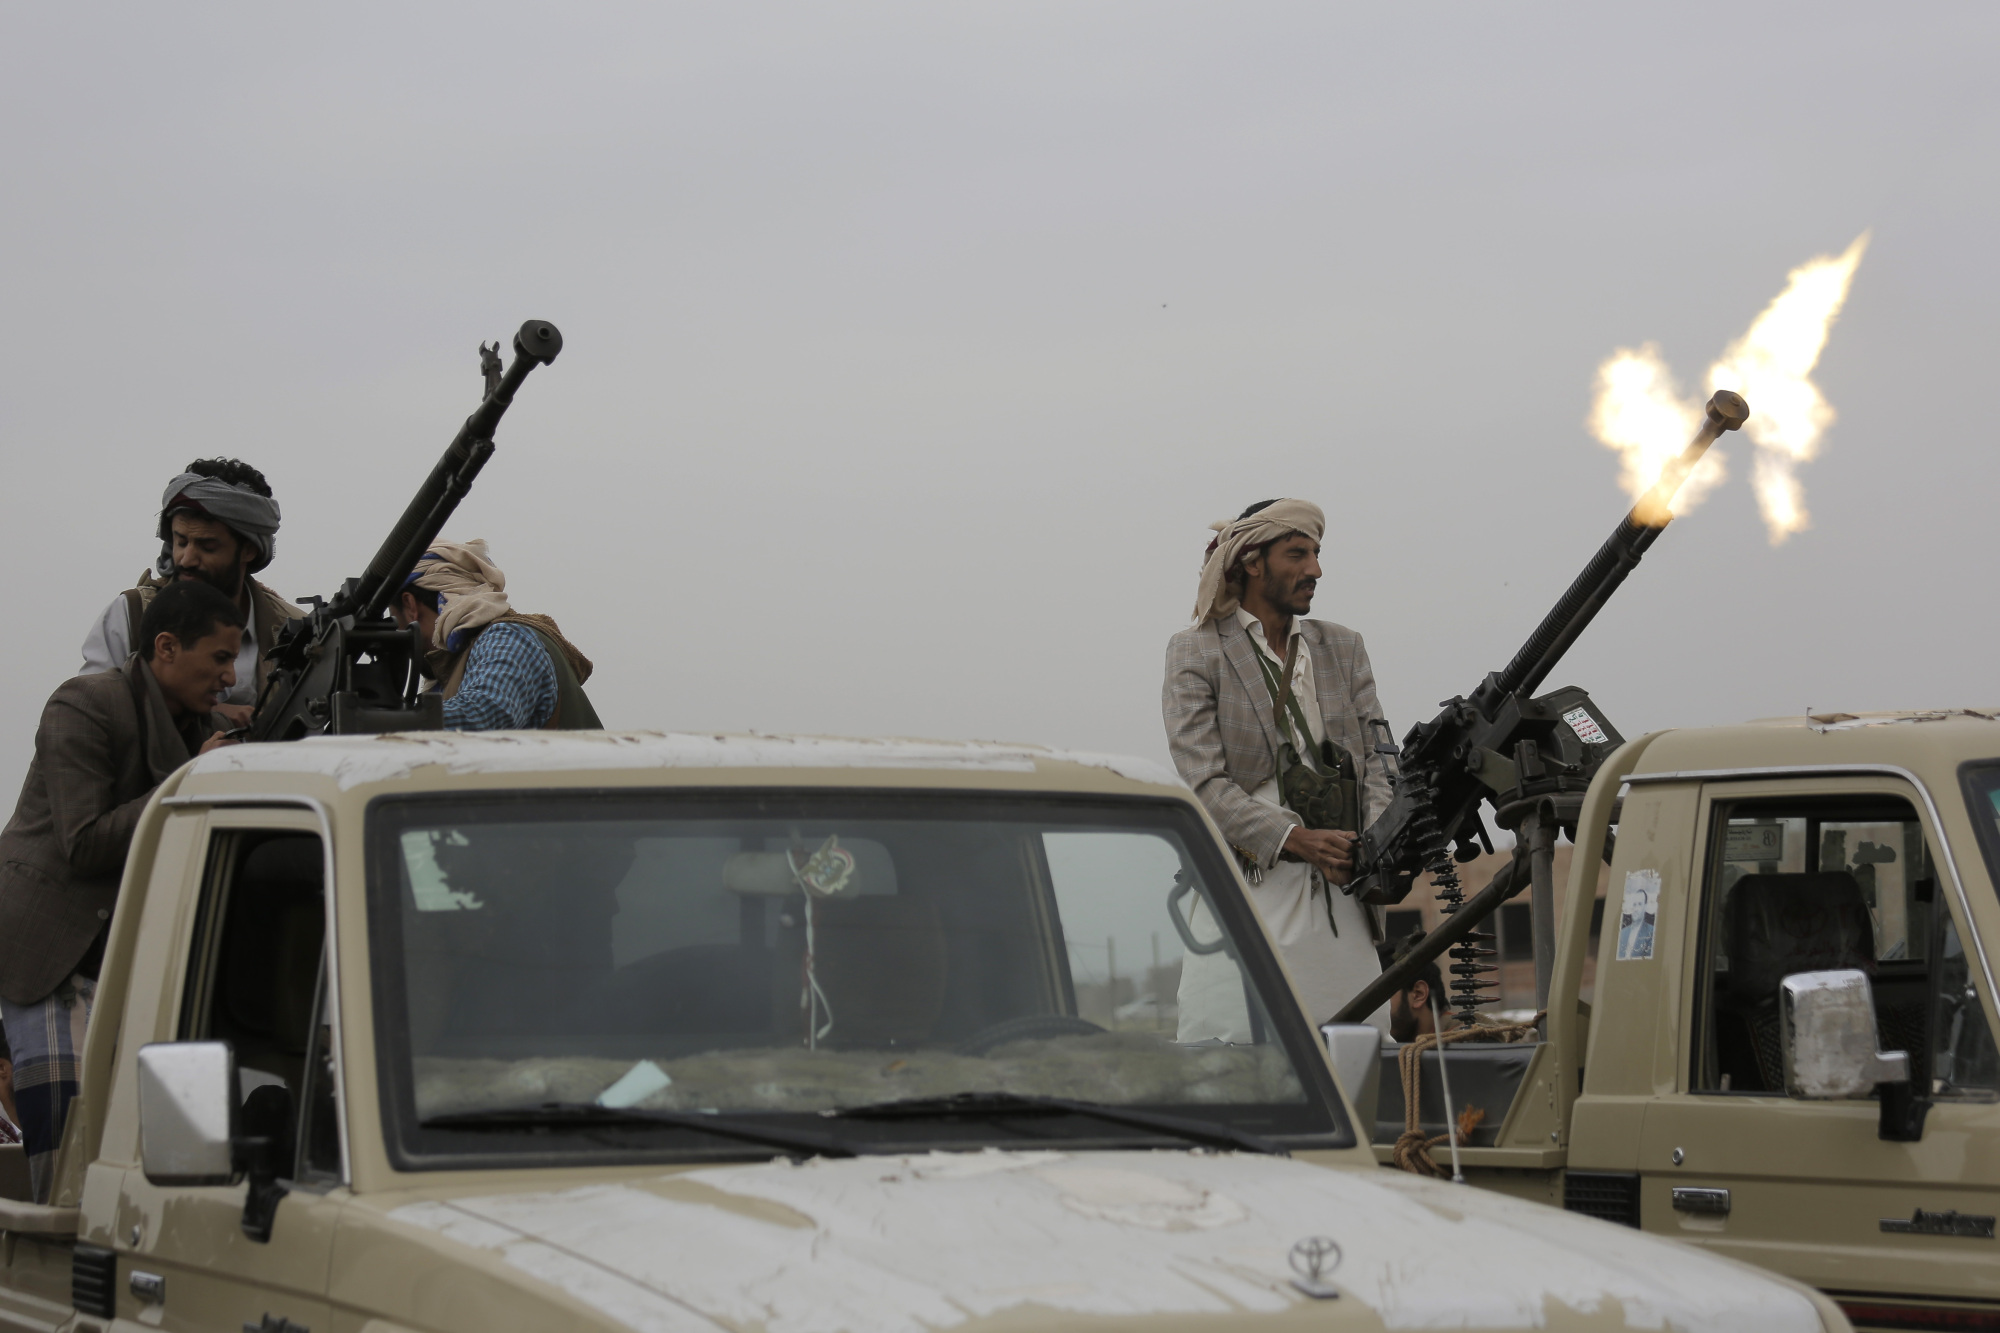 A Houthi rebel fighter fires in the air during a gathering aimed at mobilizing more fighters for their movement, in Sanaa, Thursda. The conflict in Yemen began with the 2014 takeover of Sanaa by the Houthis, who drove out the internationally recognized government. Months later, in March 2015, a Saudi-led coalition launched its air campaign to prevent the rebels from overrunning the country's south.   AP